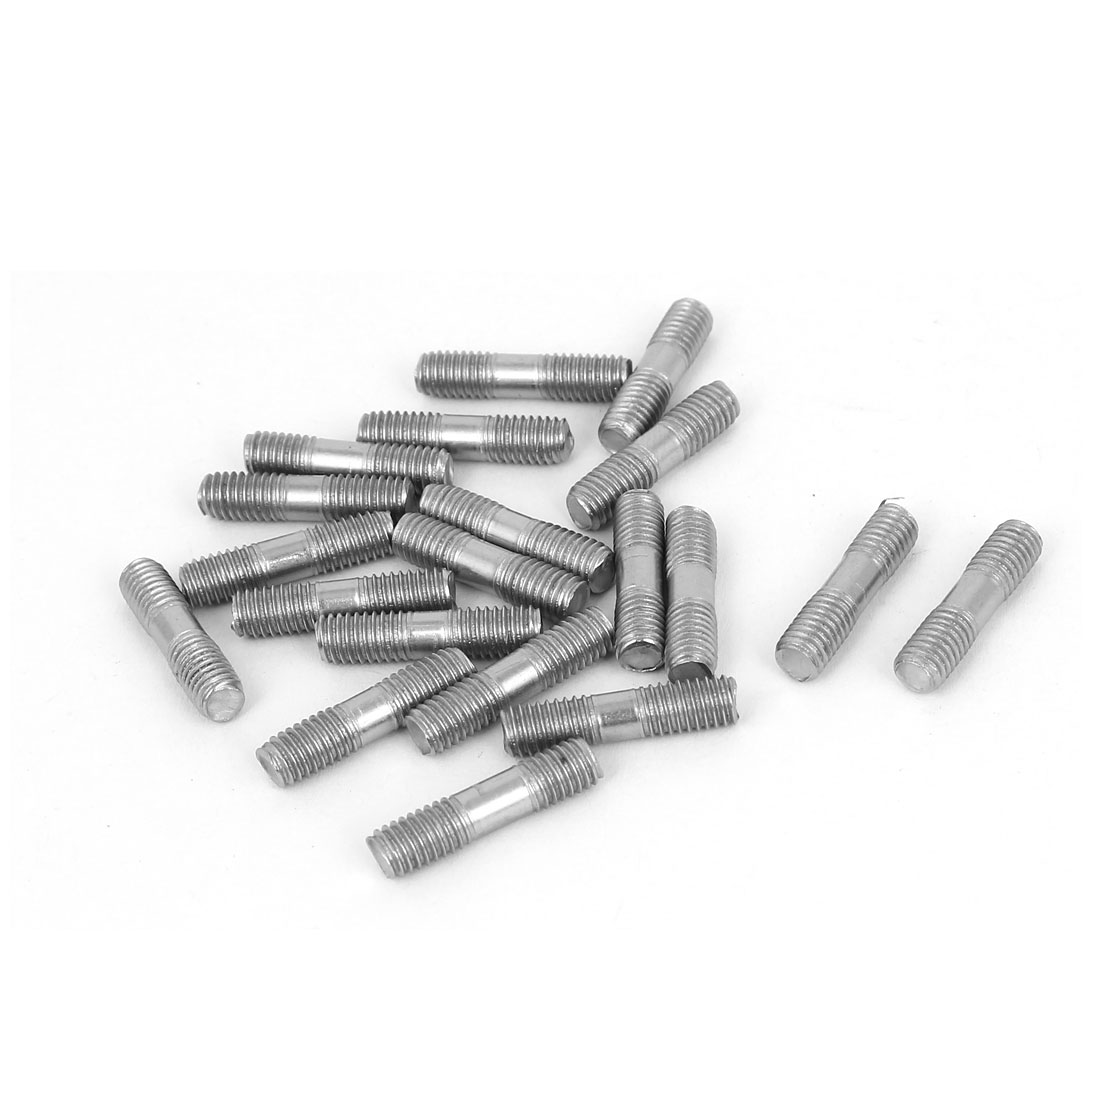 M5x20mm 304 Stainless Steel Double End Thread Tip Tight Adjustable Push Rod Stud 20pcs